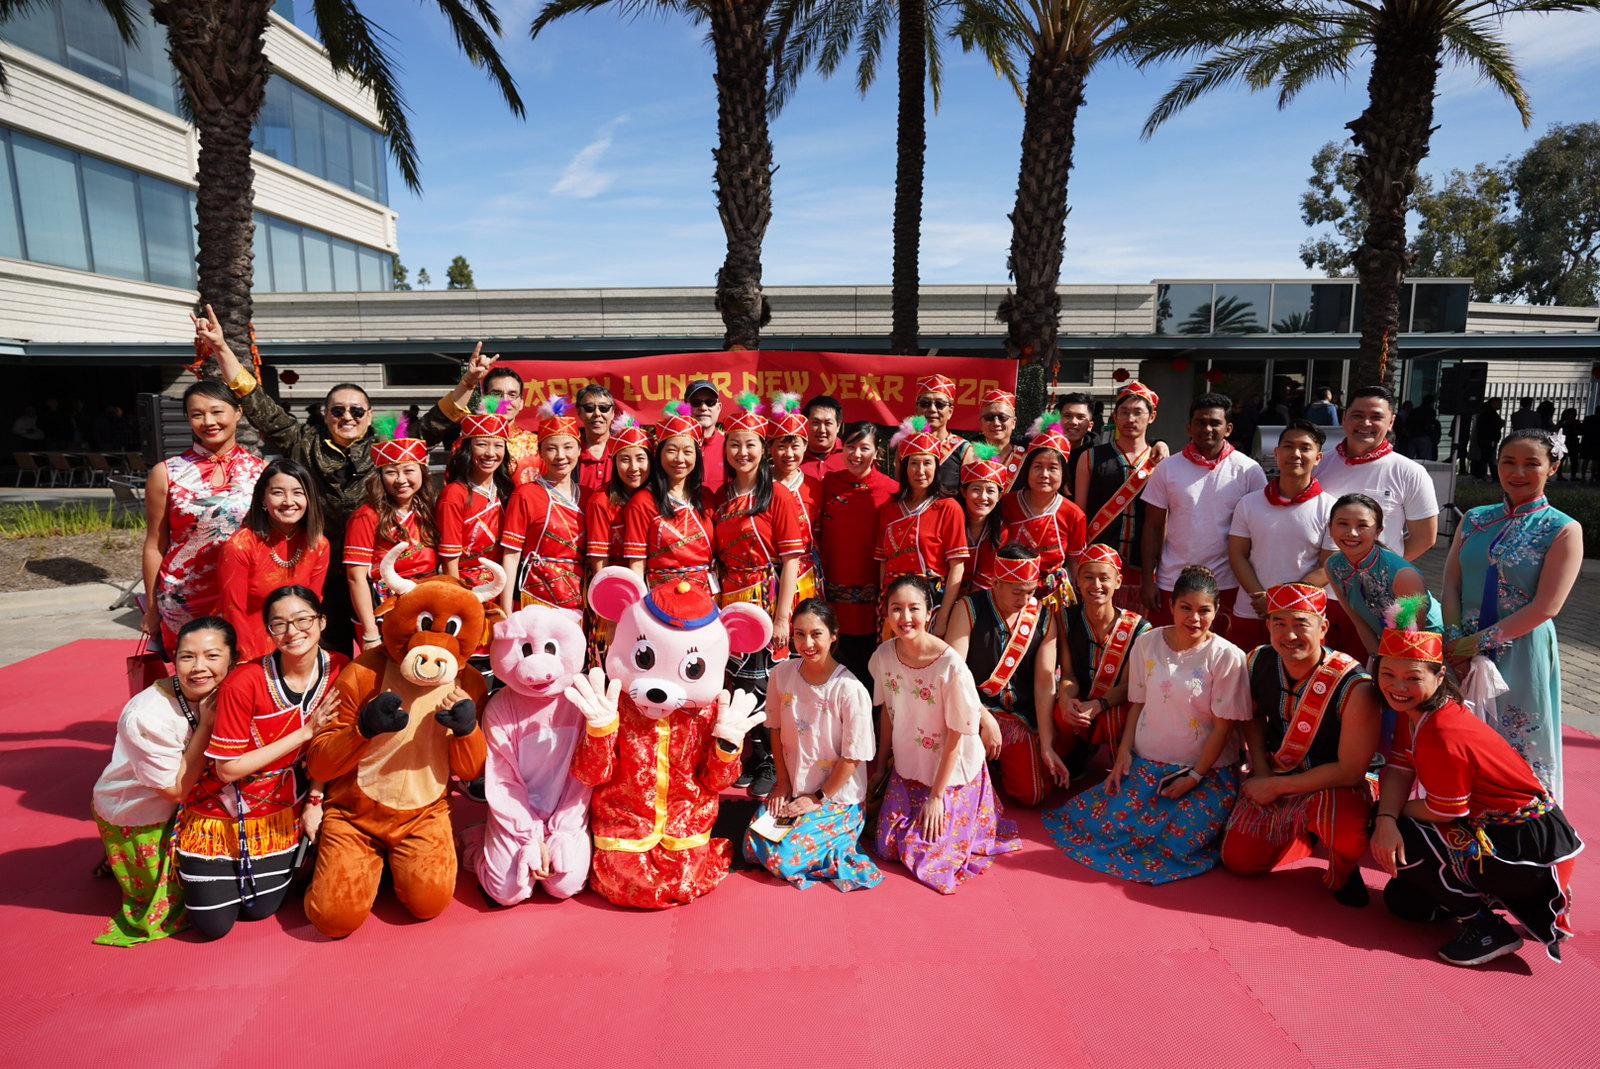 Experian's Asian American ERG in traditional clothing, posing together with Year of the Rat mascot